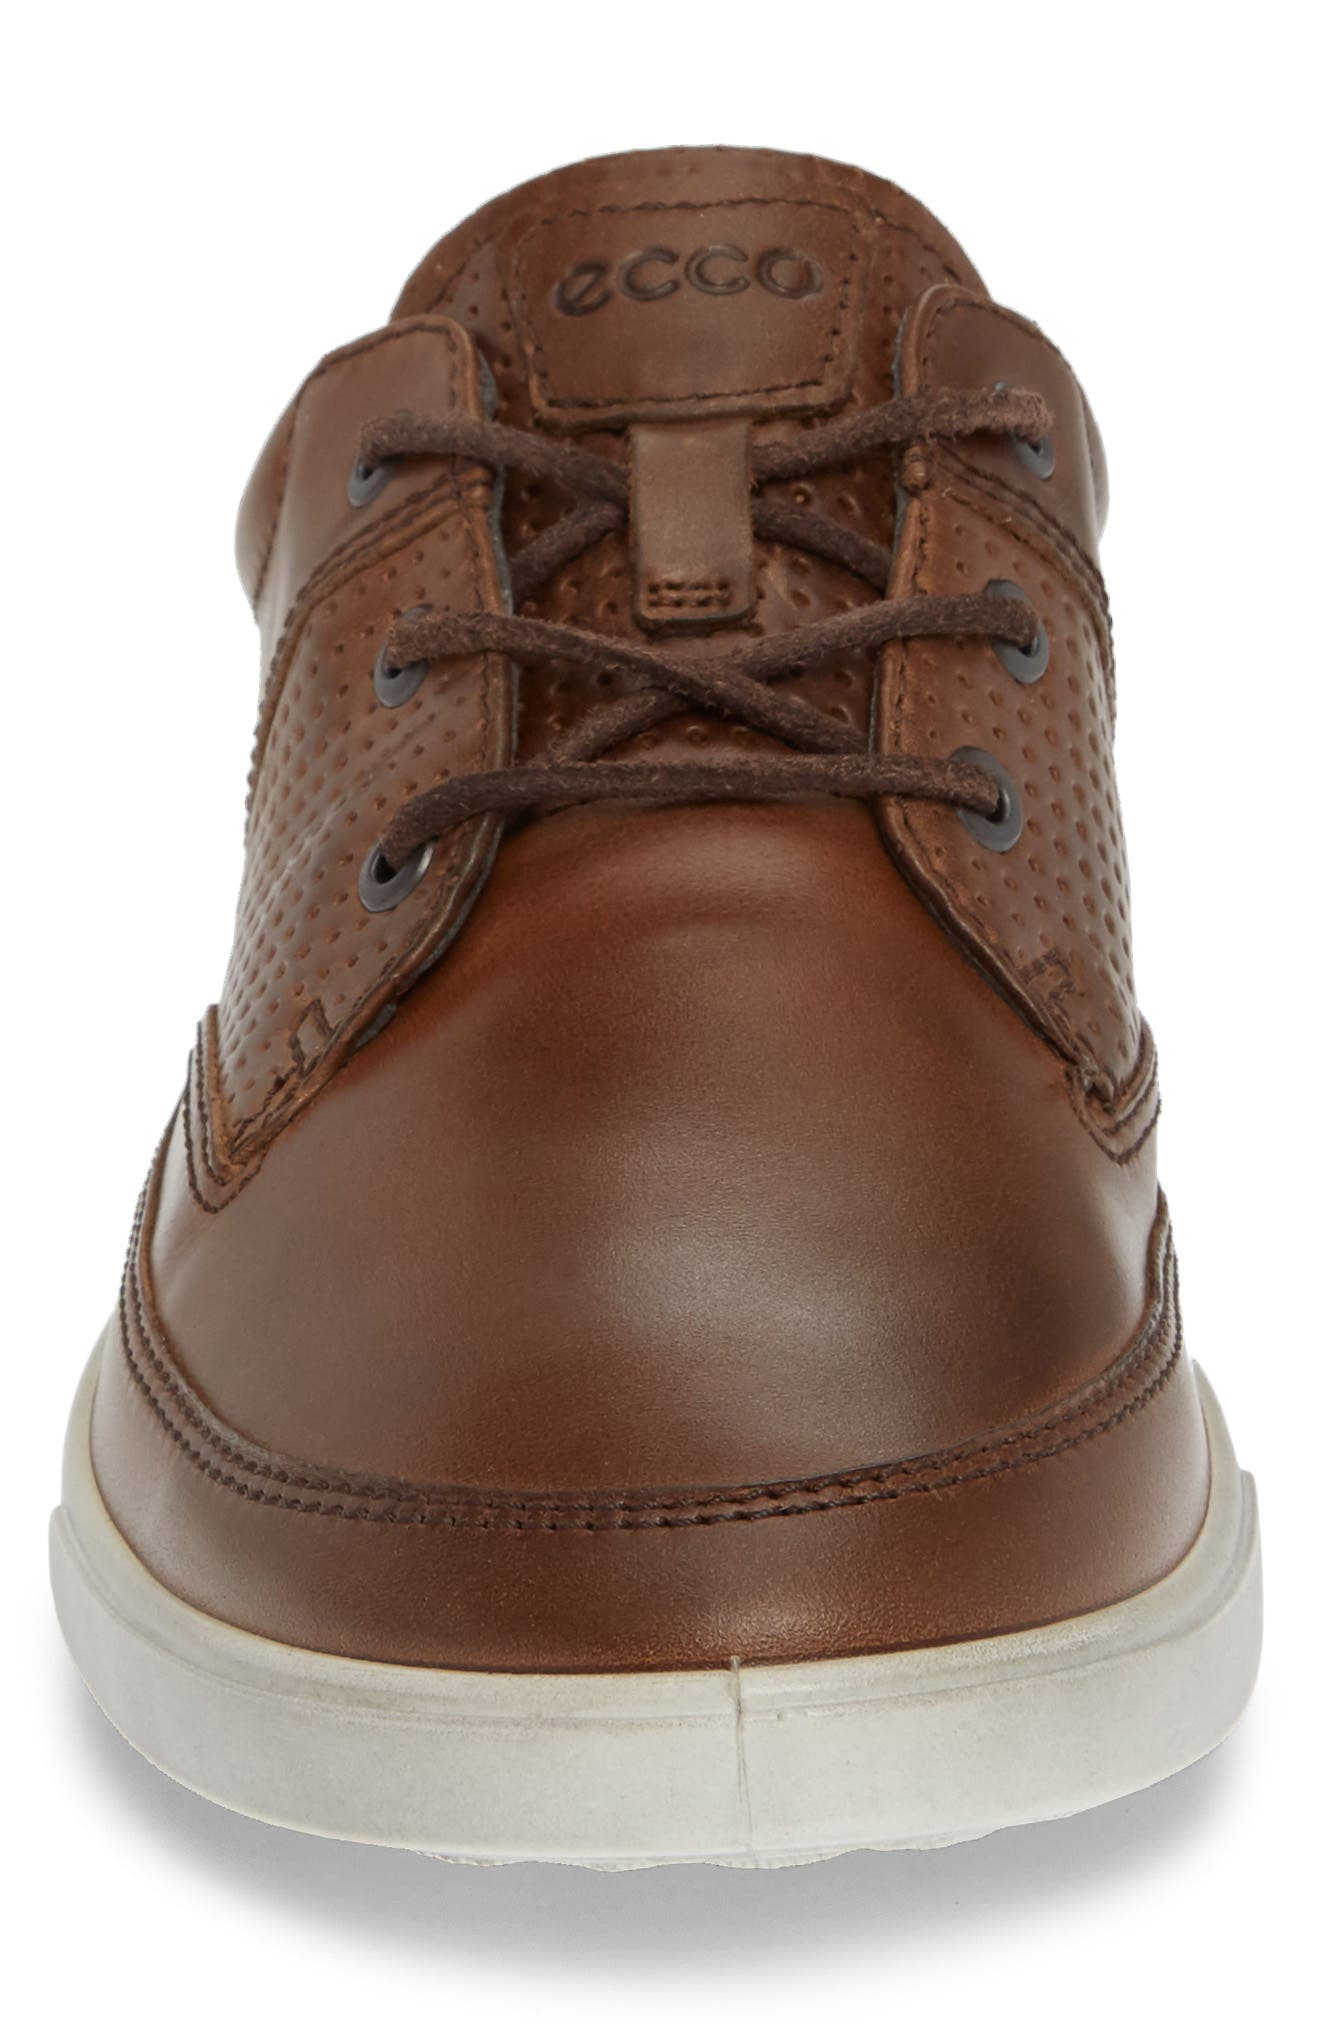 'Collin' Nautical Sneaker,                             Alternate thumbnail 4, color,                             COCOA BROWN LEATHER